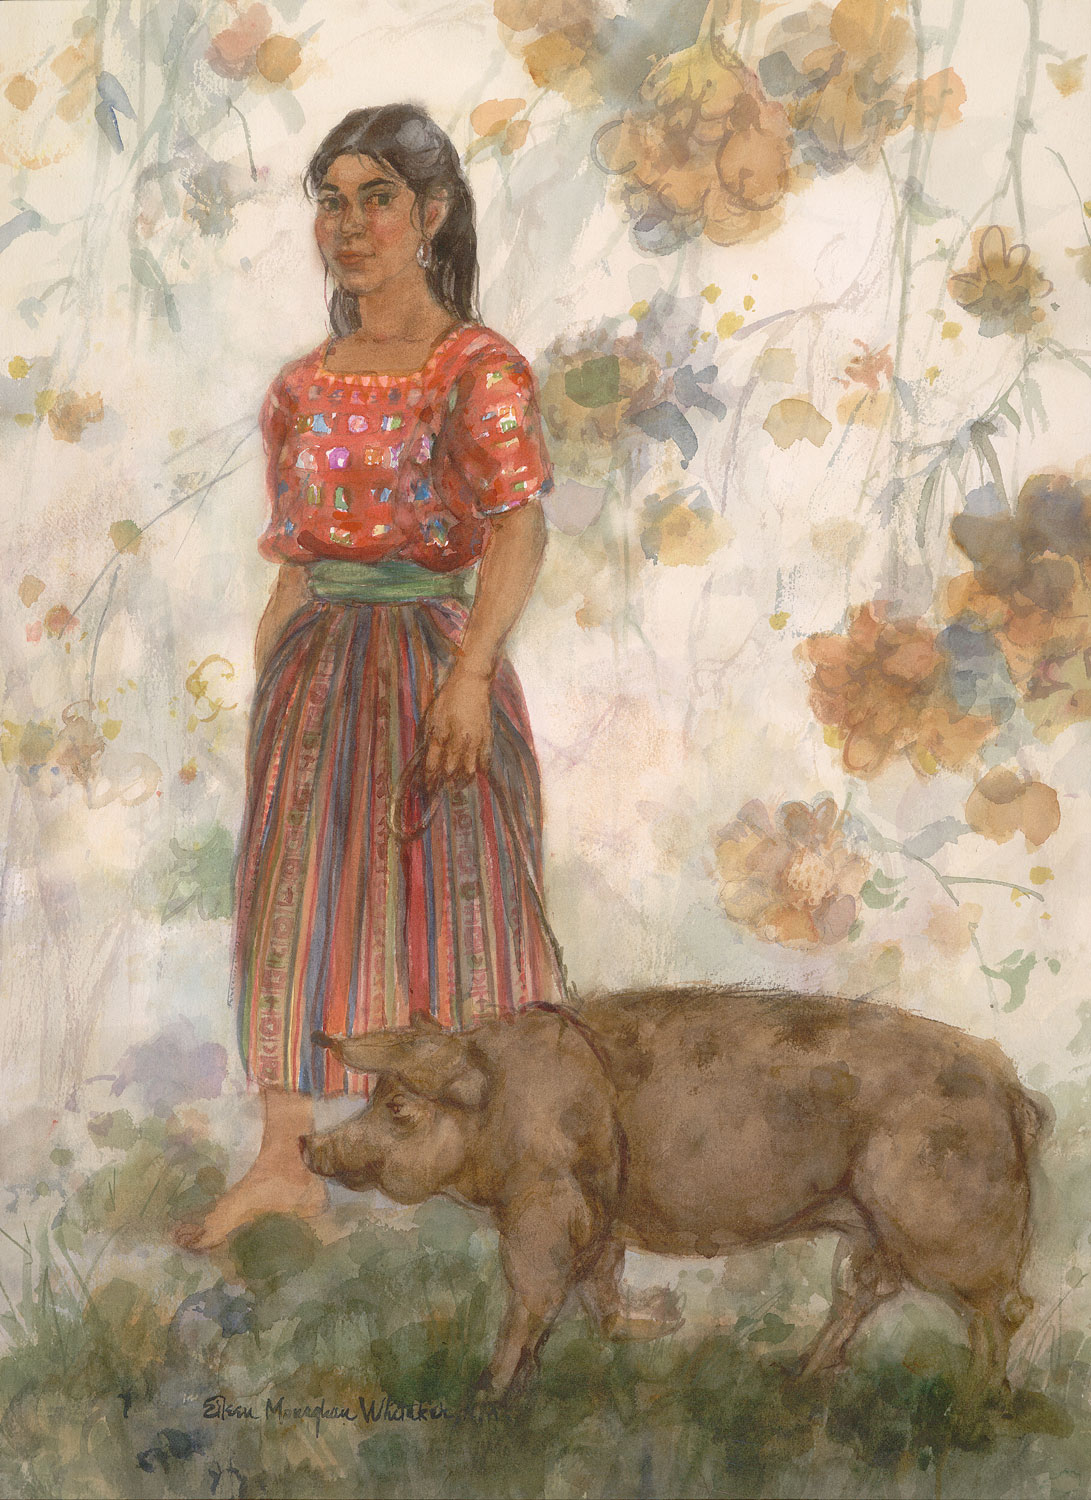 """The Little Piggy Stays Home"" 1990 © Eileen Monaghan Whitaker N.A. 30x22 inches Watercolor"